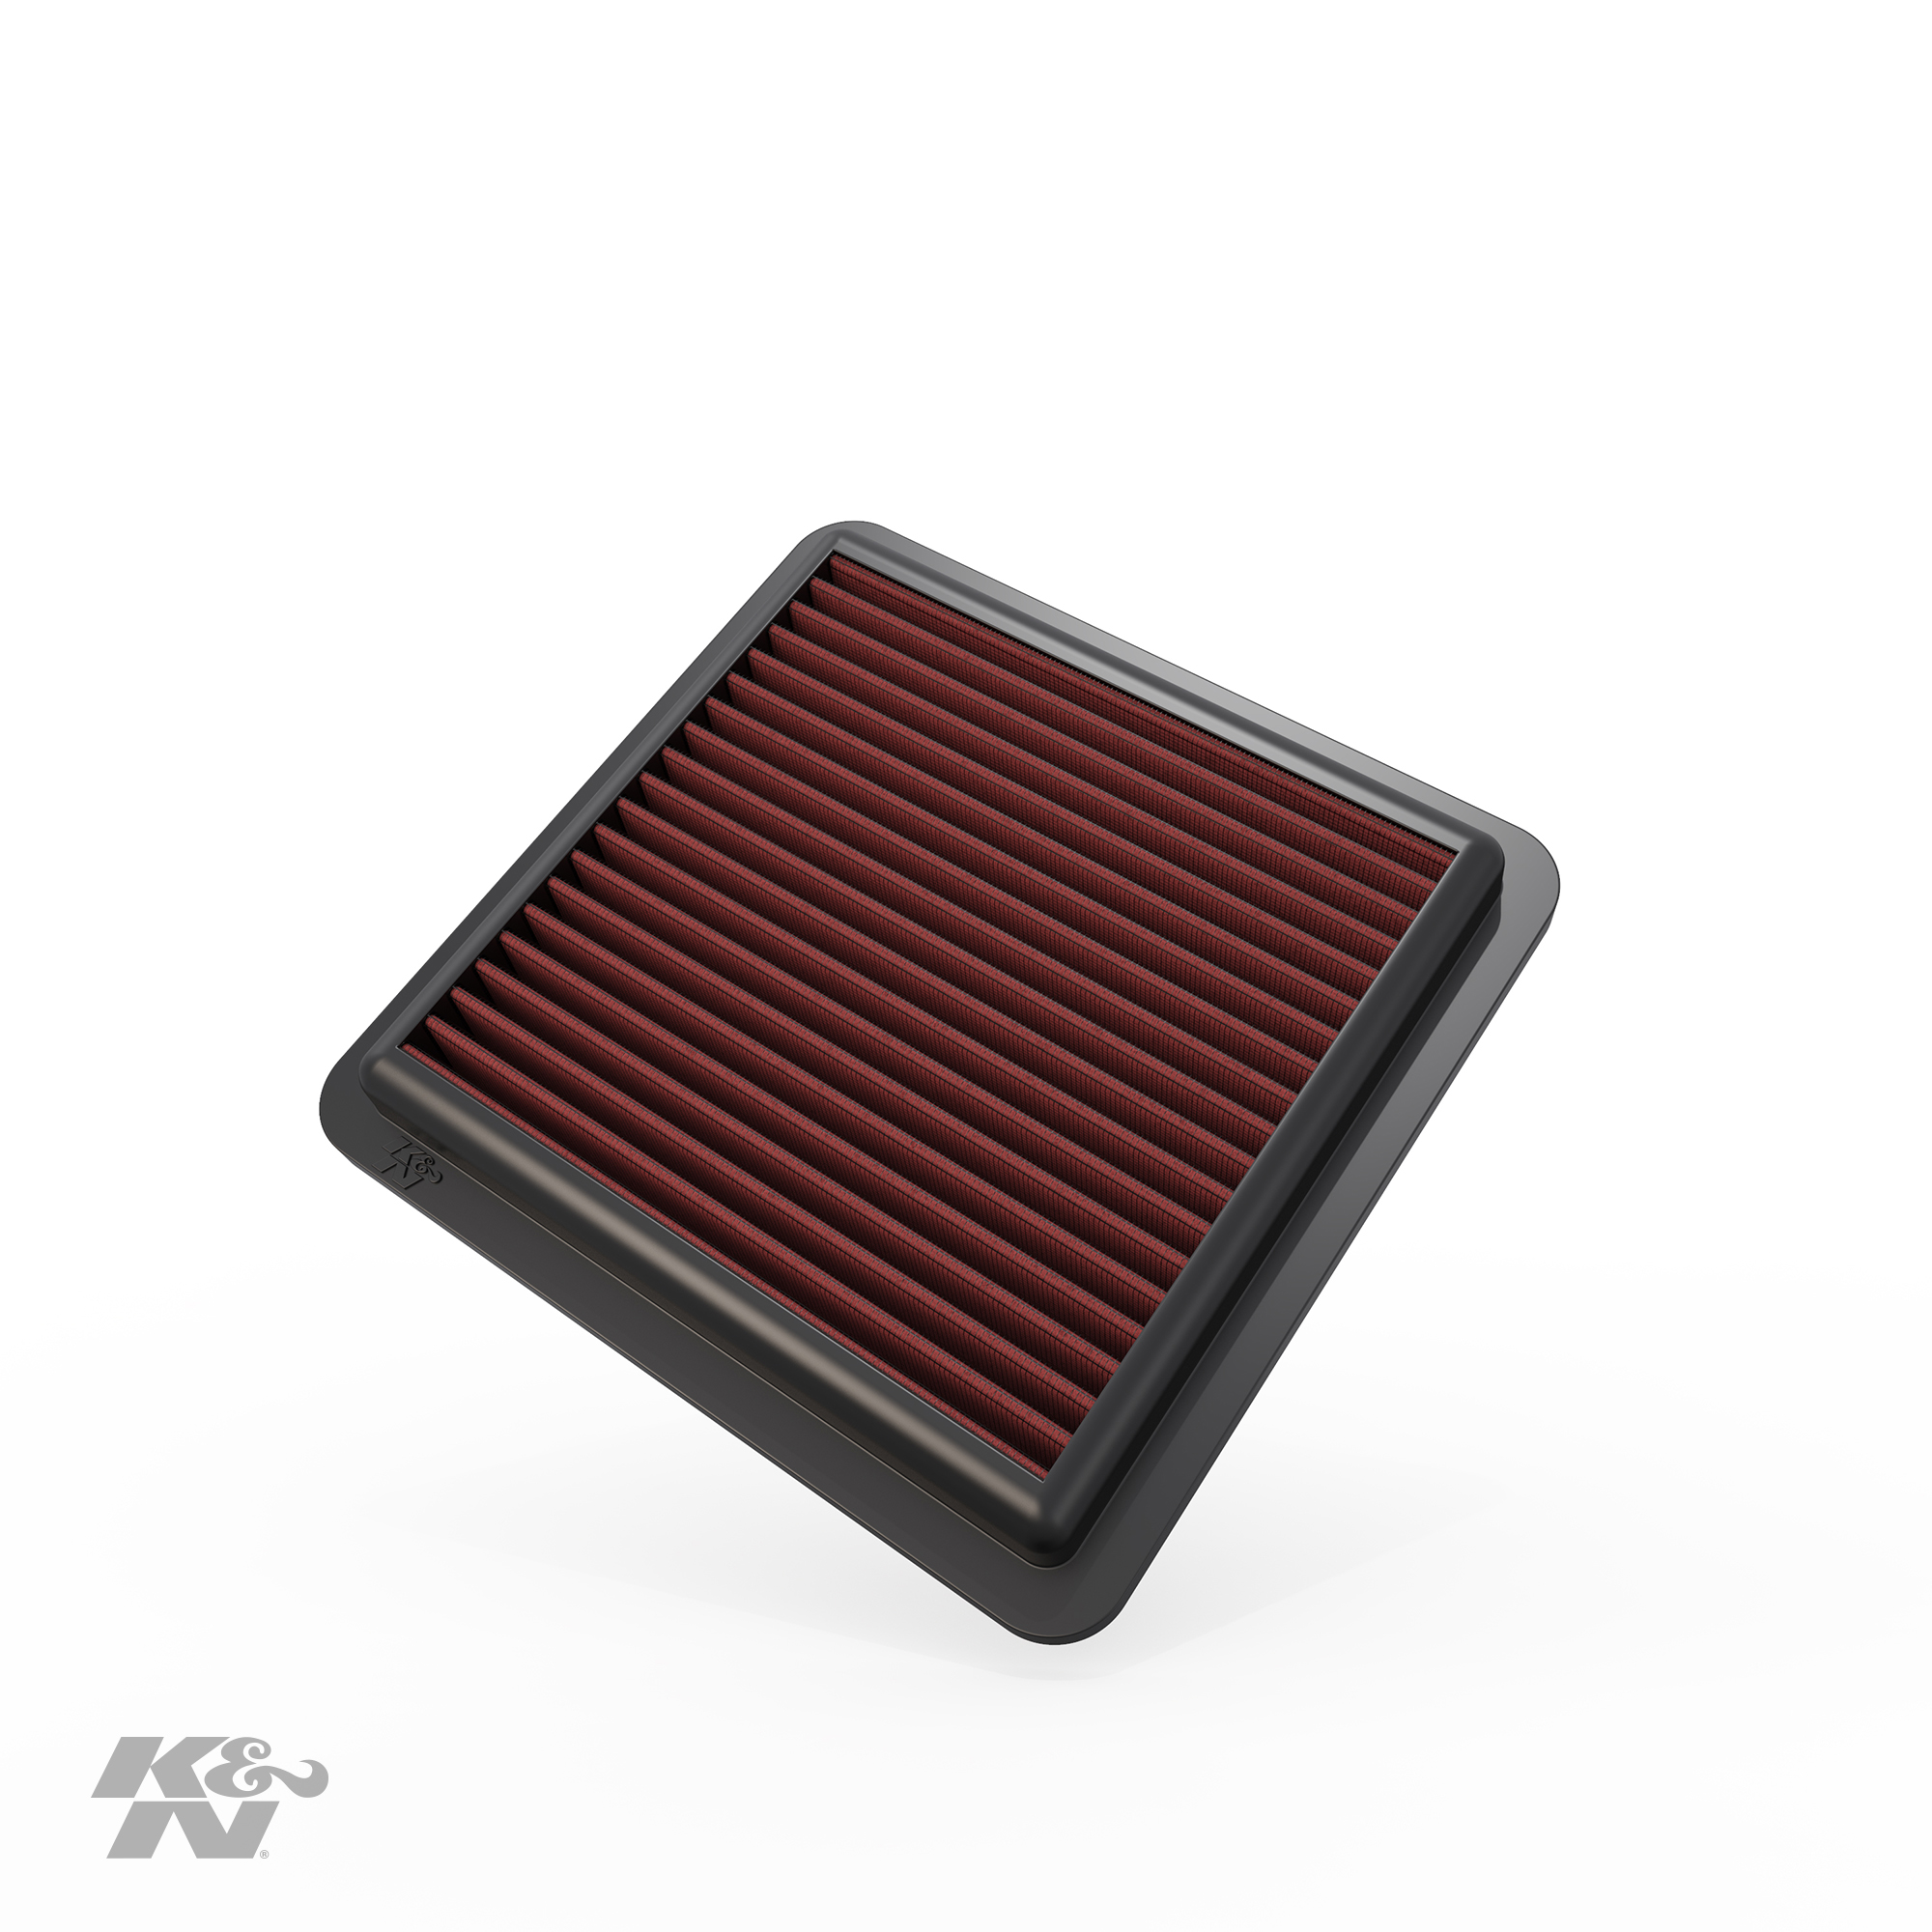 Peugeot 208 2012-2016 Mann Service Engine Filtration Replacement Oil Filter